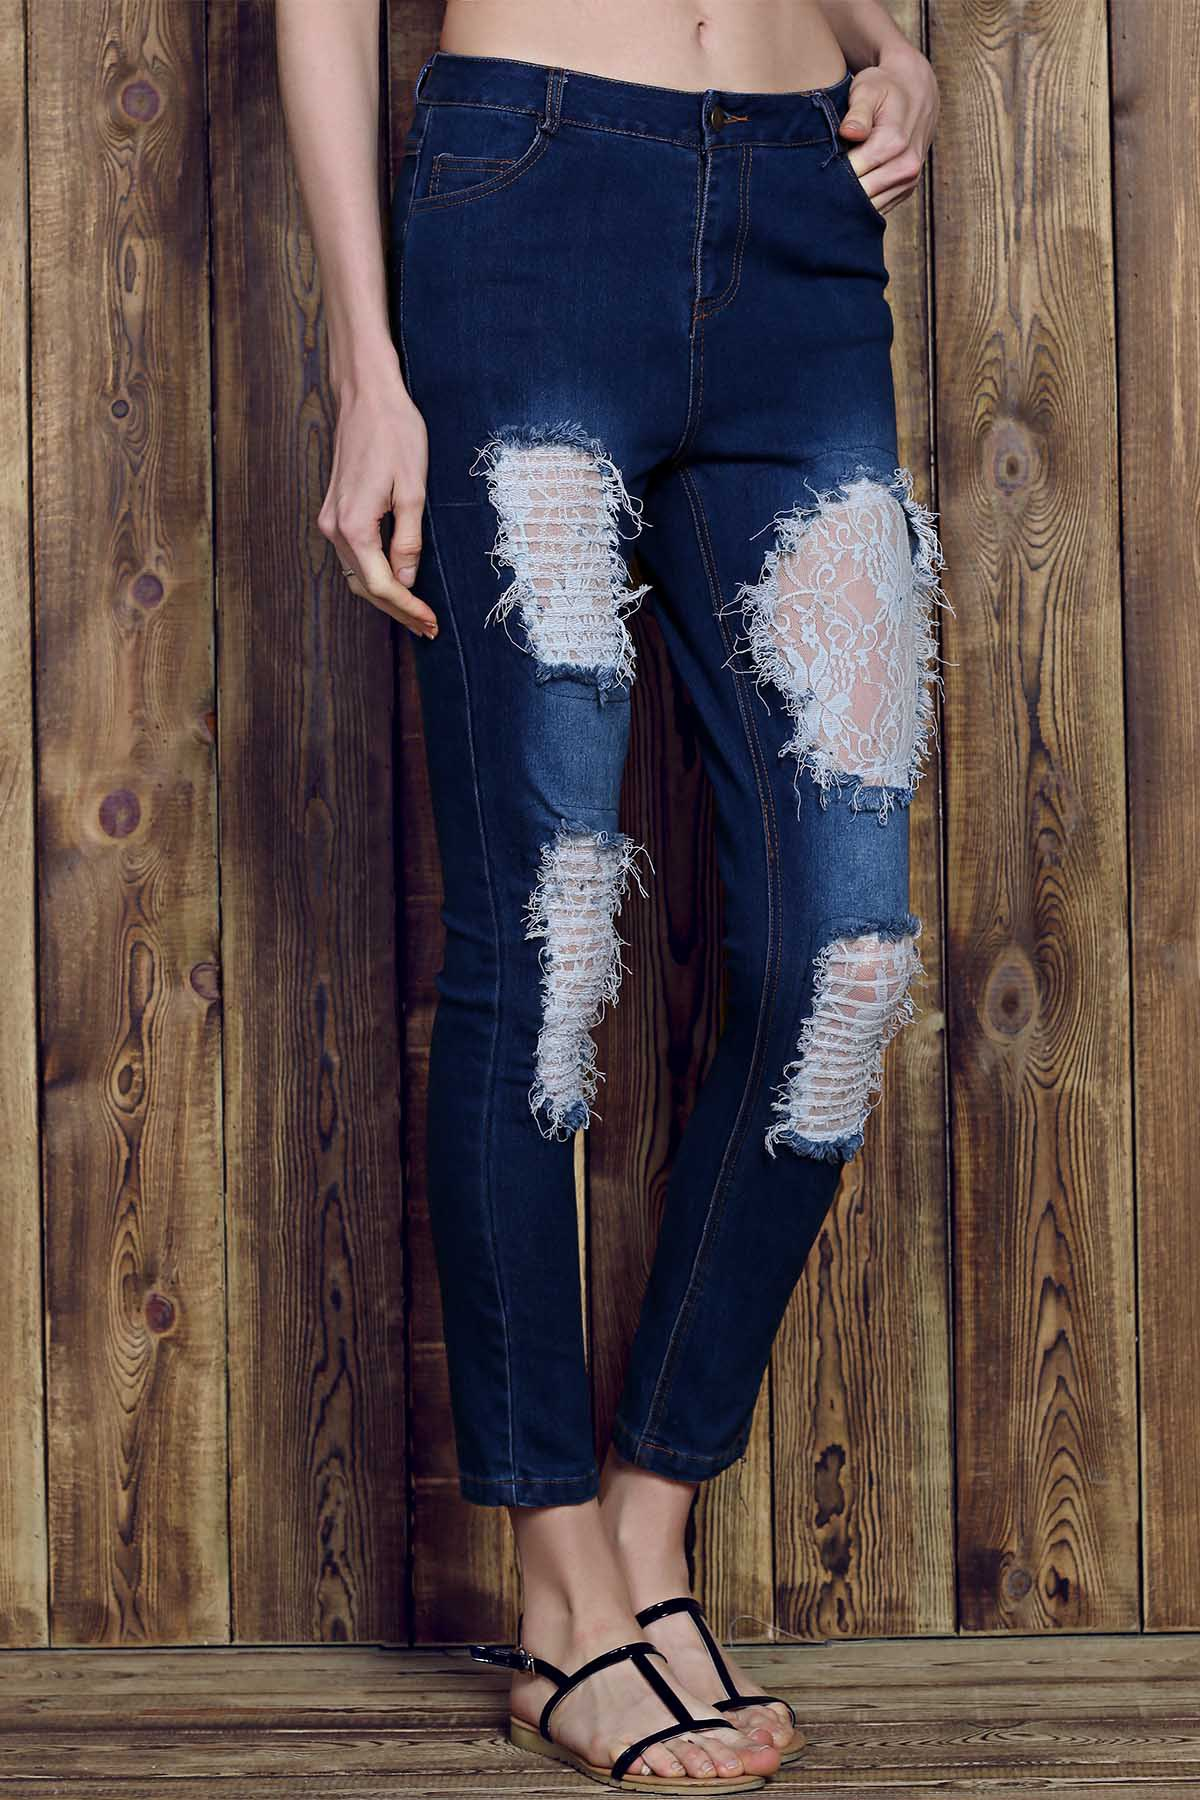 Chic Rose Print See-Through Lace Spliced Ripped Jeans For Women - DEEP BLUE S